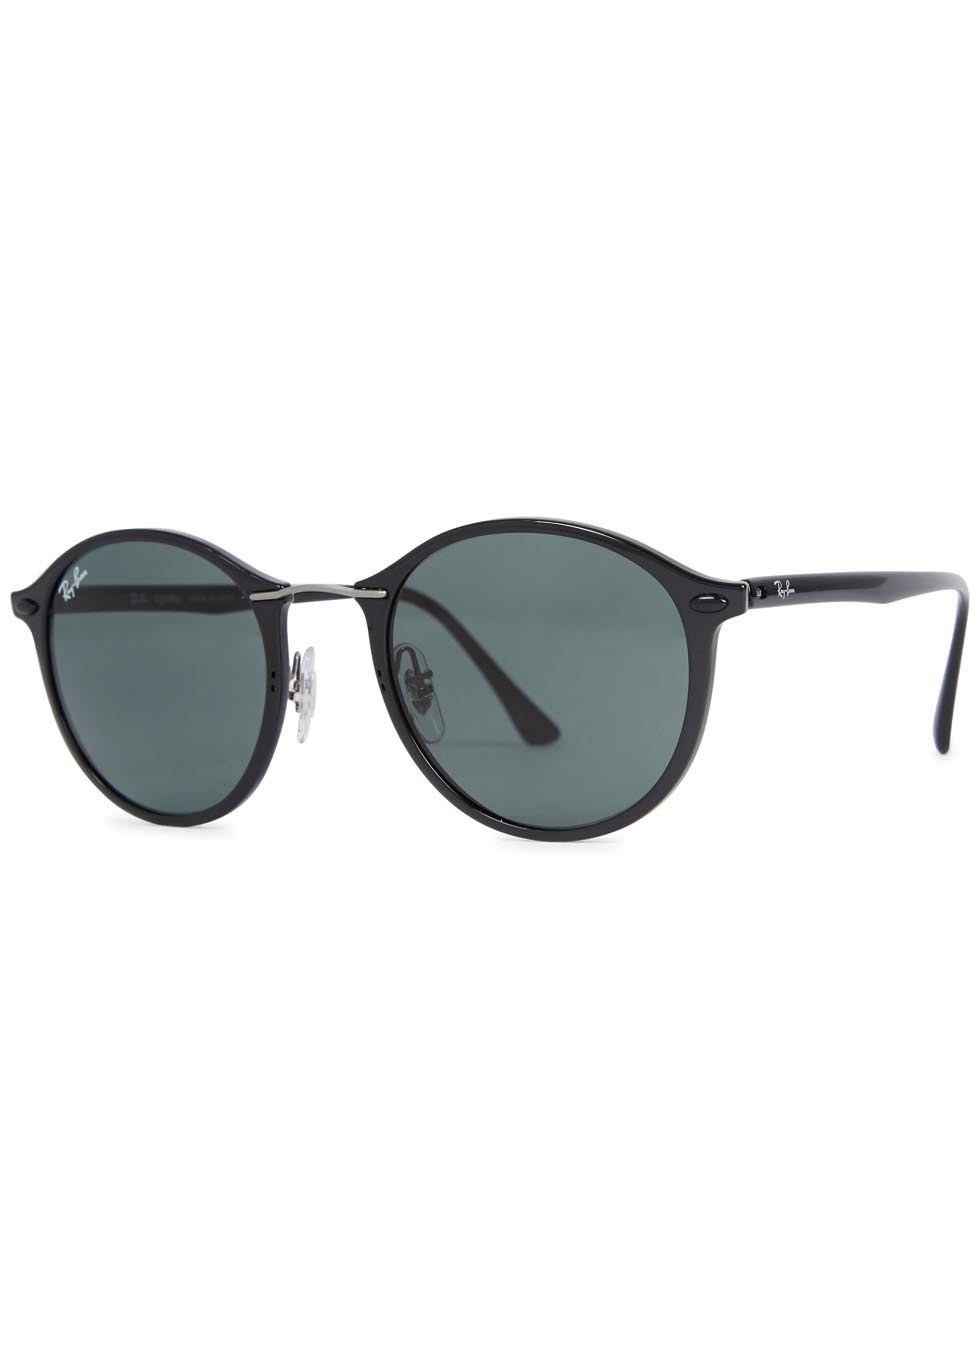 Black Round Frame Sunglasses - predominant colour: black; occasions: casual, holiday; style: round; size: standard; material: plastic/rubber; pattern: plain; finish: plain; season: a/w 2015; wardrobe: basic